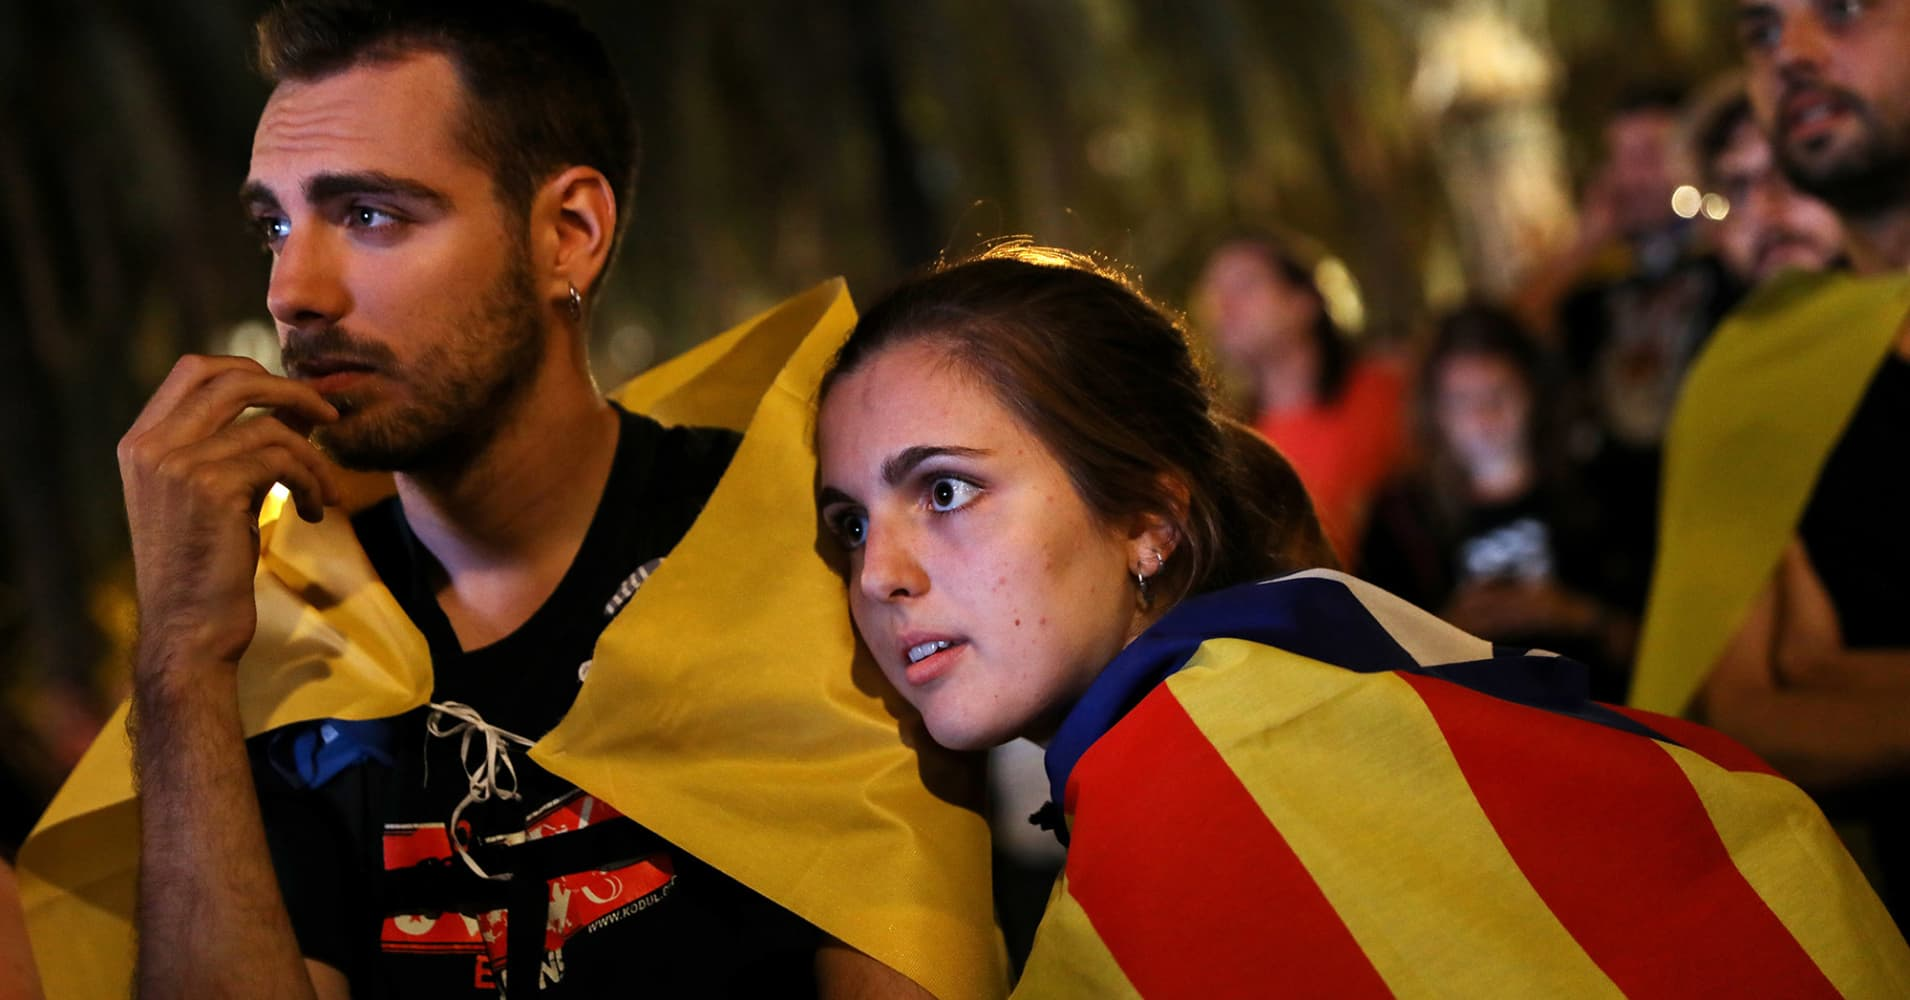 Article 155: What Spain's 'nuclear option' really means